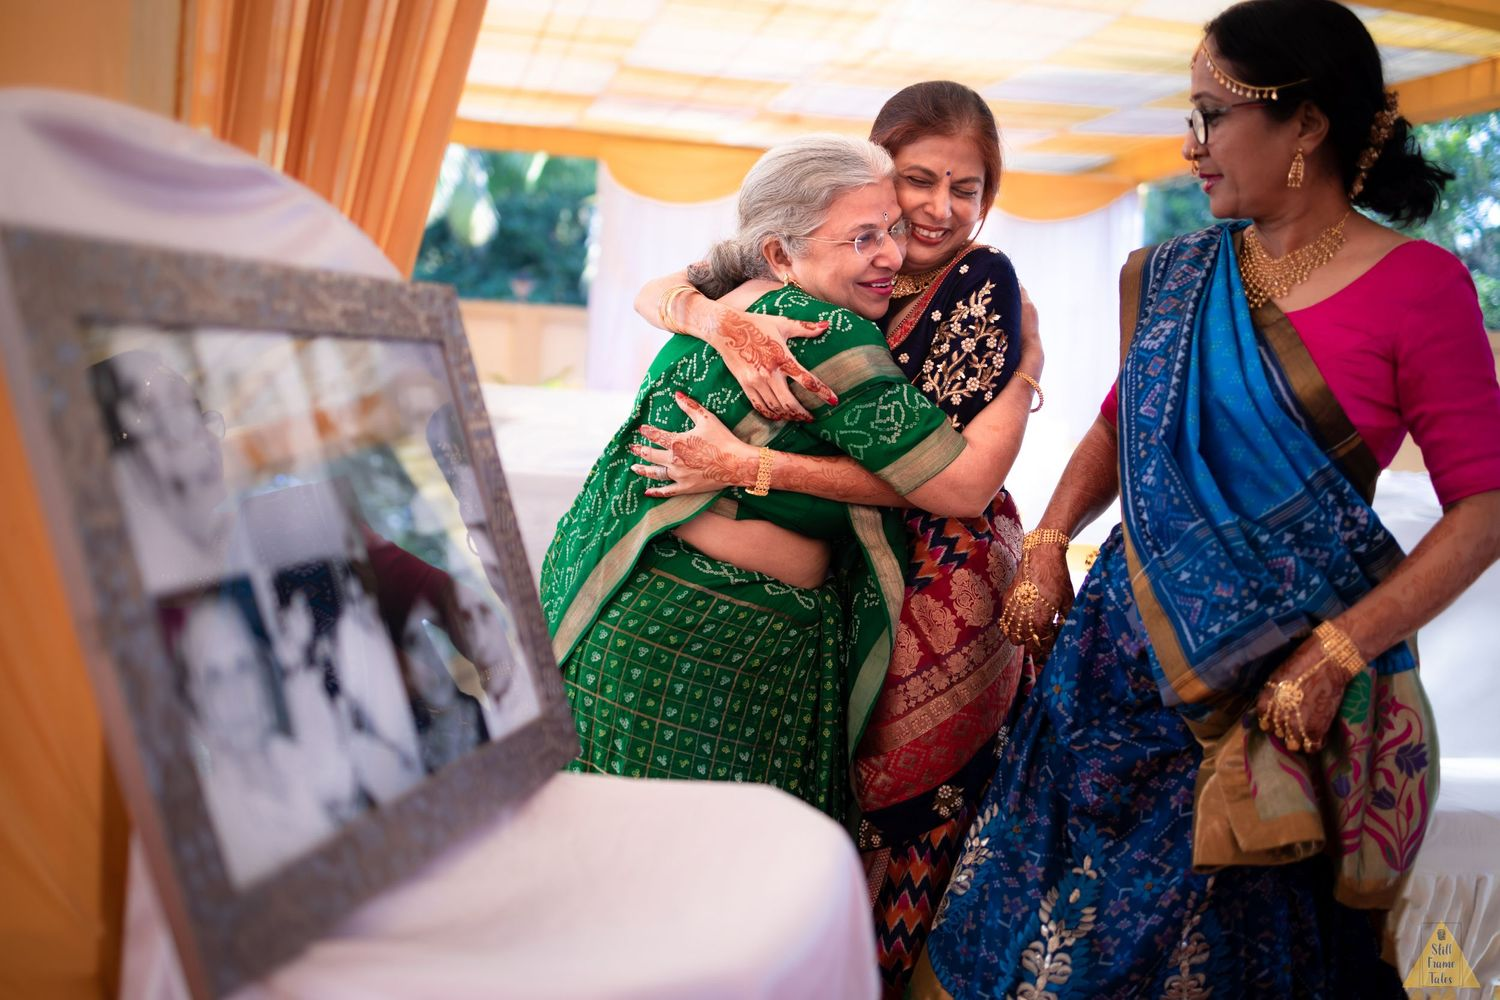 Relatives hugging each other at a destination wedding ceremony